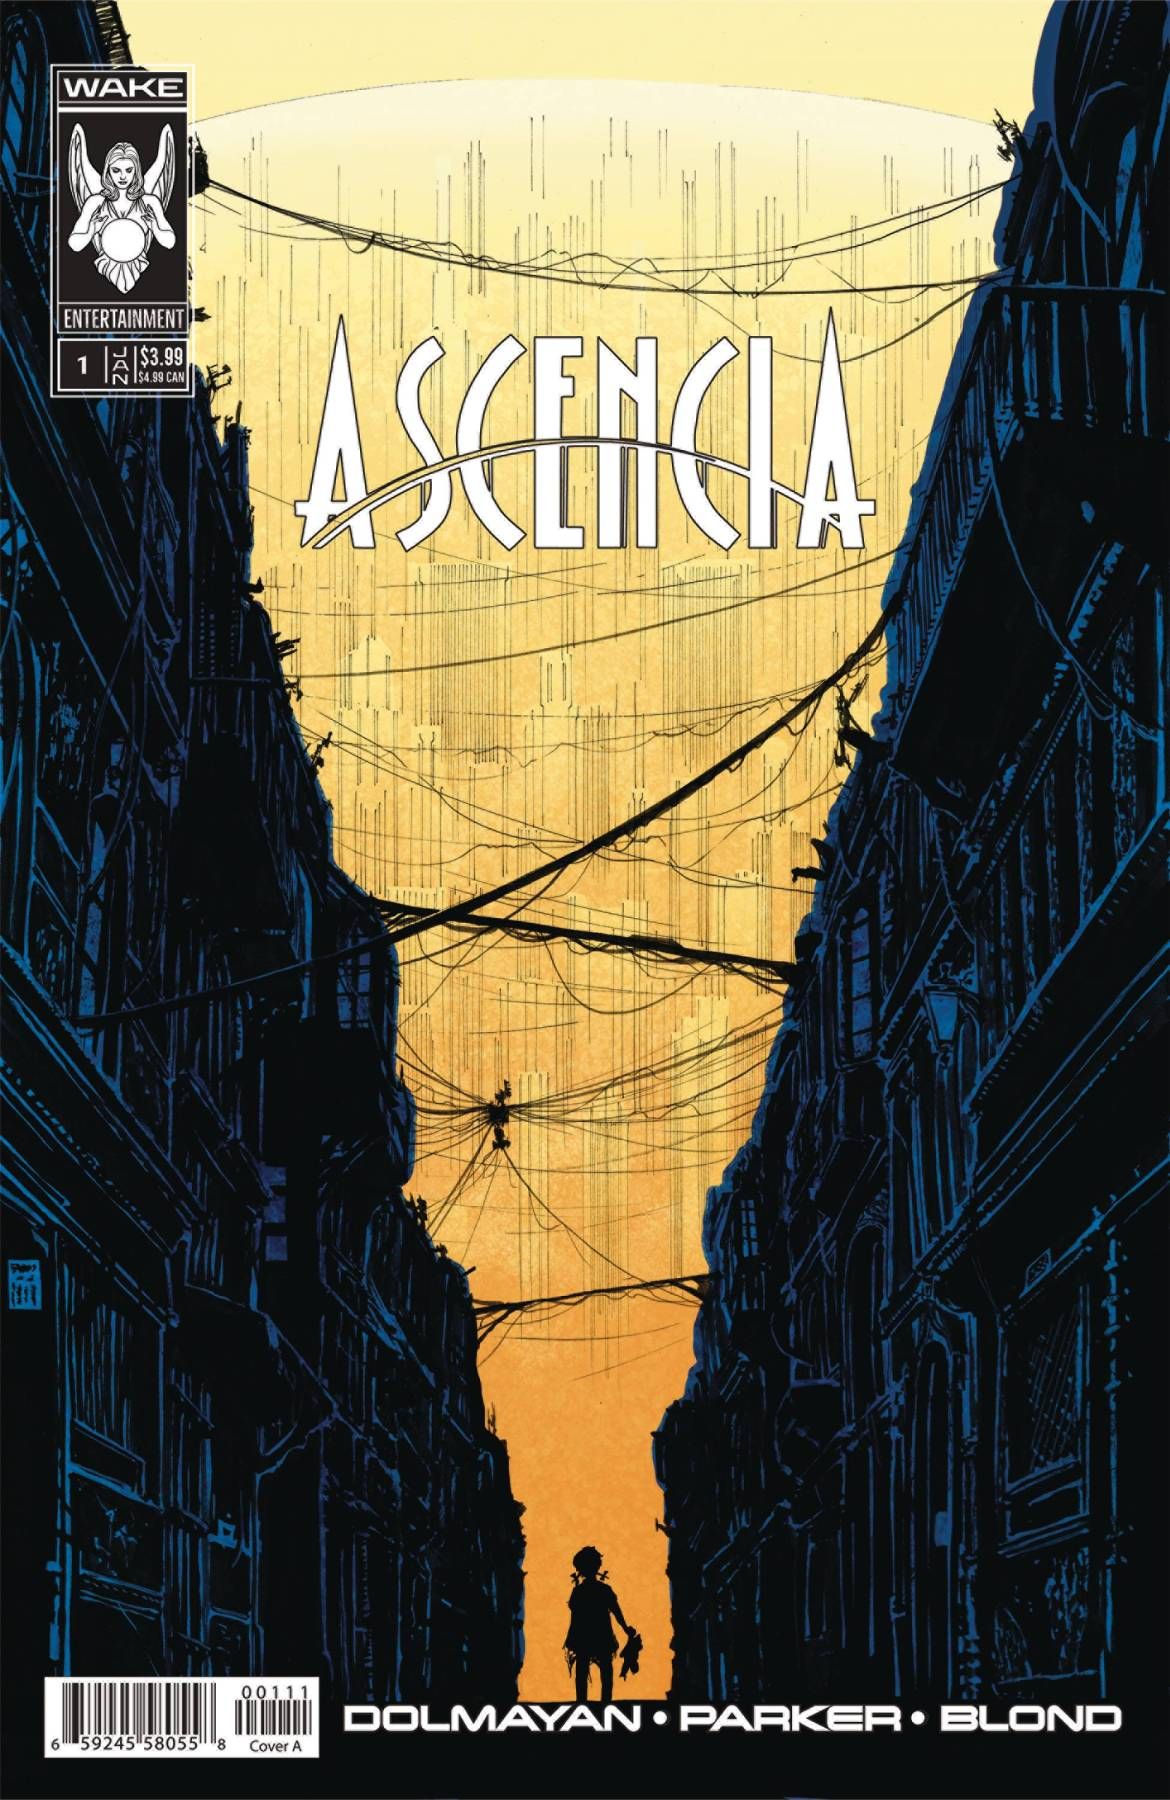 STL173025 ComicList: New Comic Book Releases List for 01/13/2021 (1 Week Out)